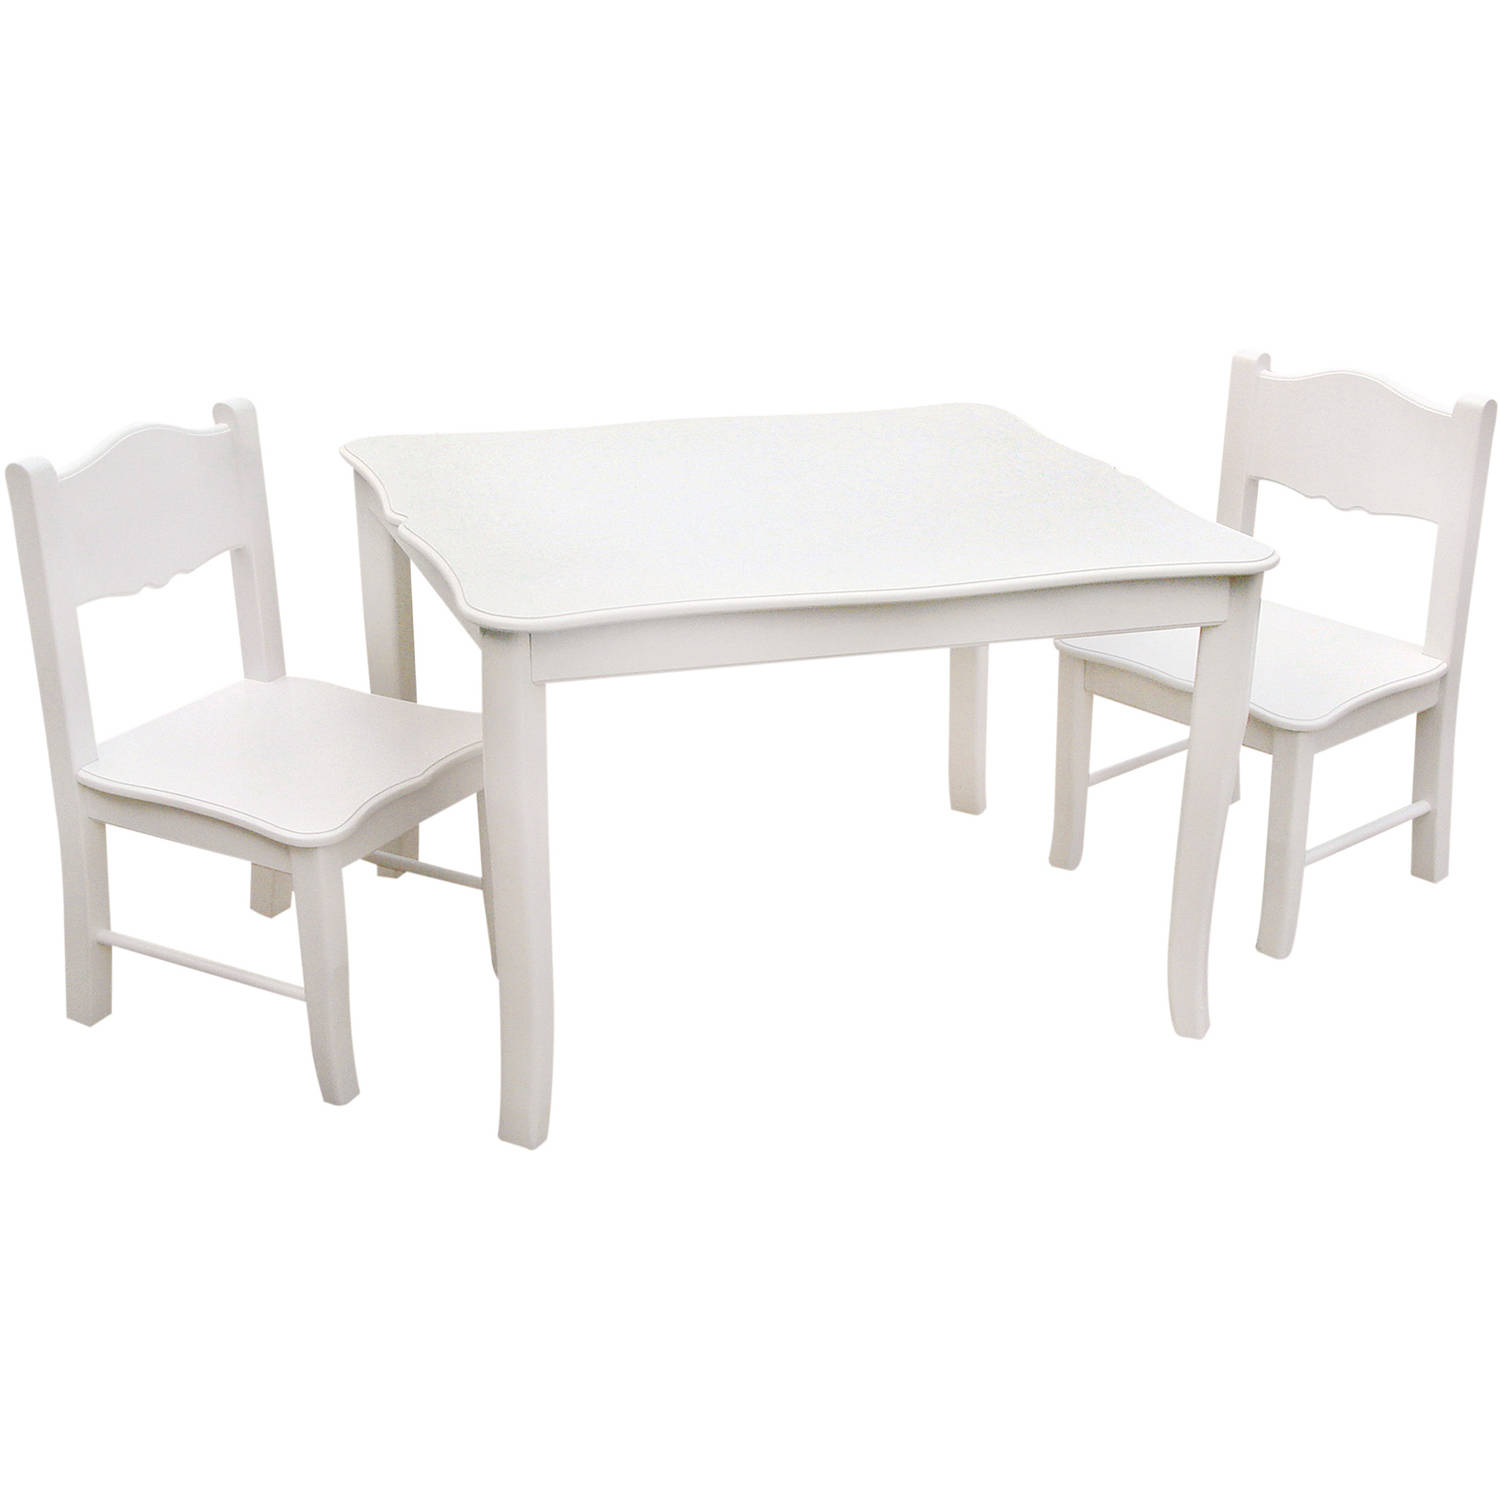 Guidecraft Table and Chairs Set, Classic White